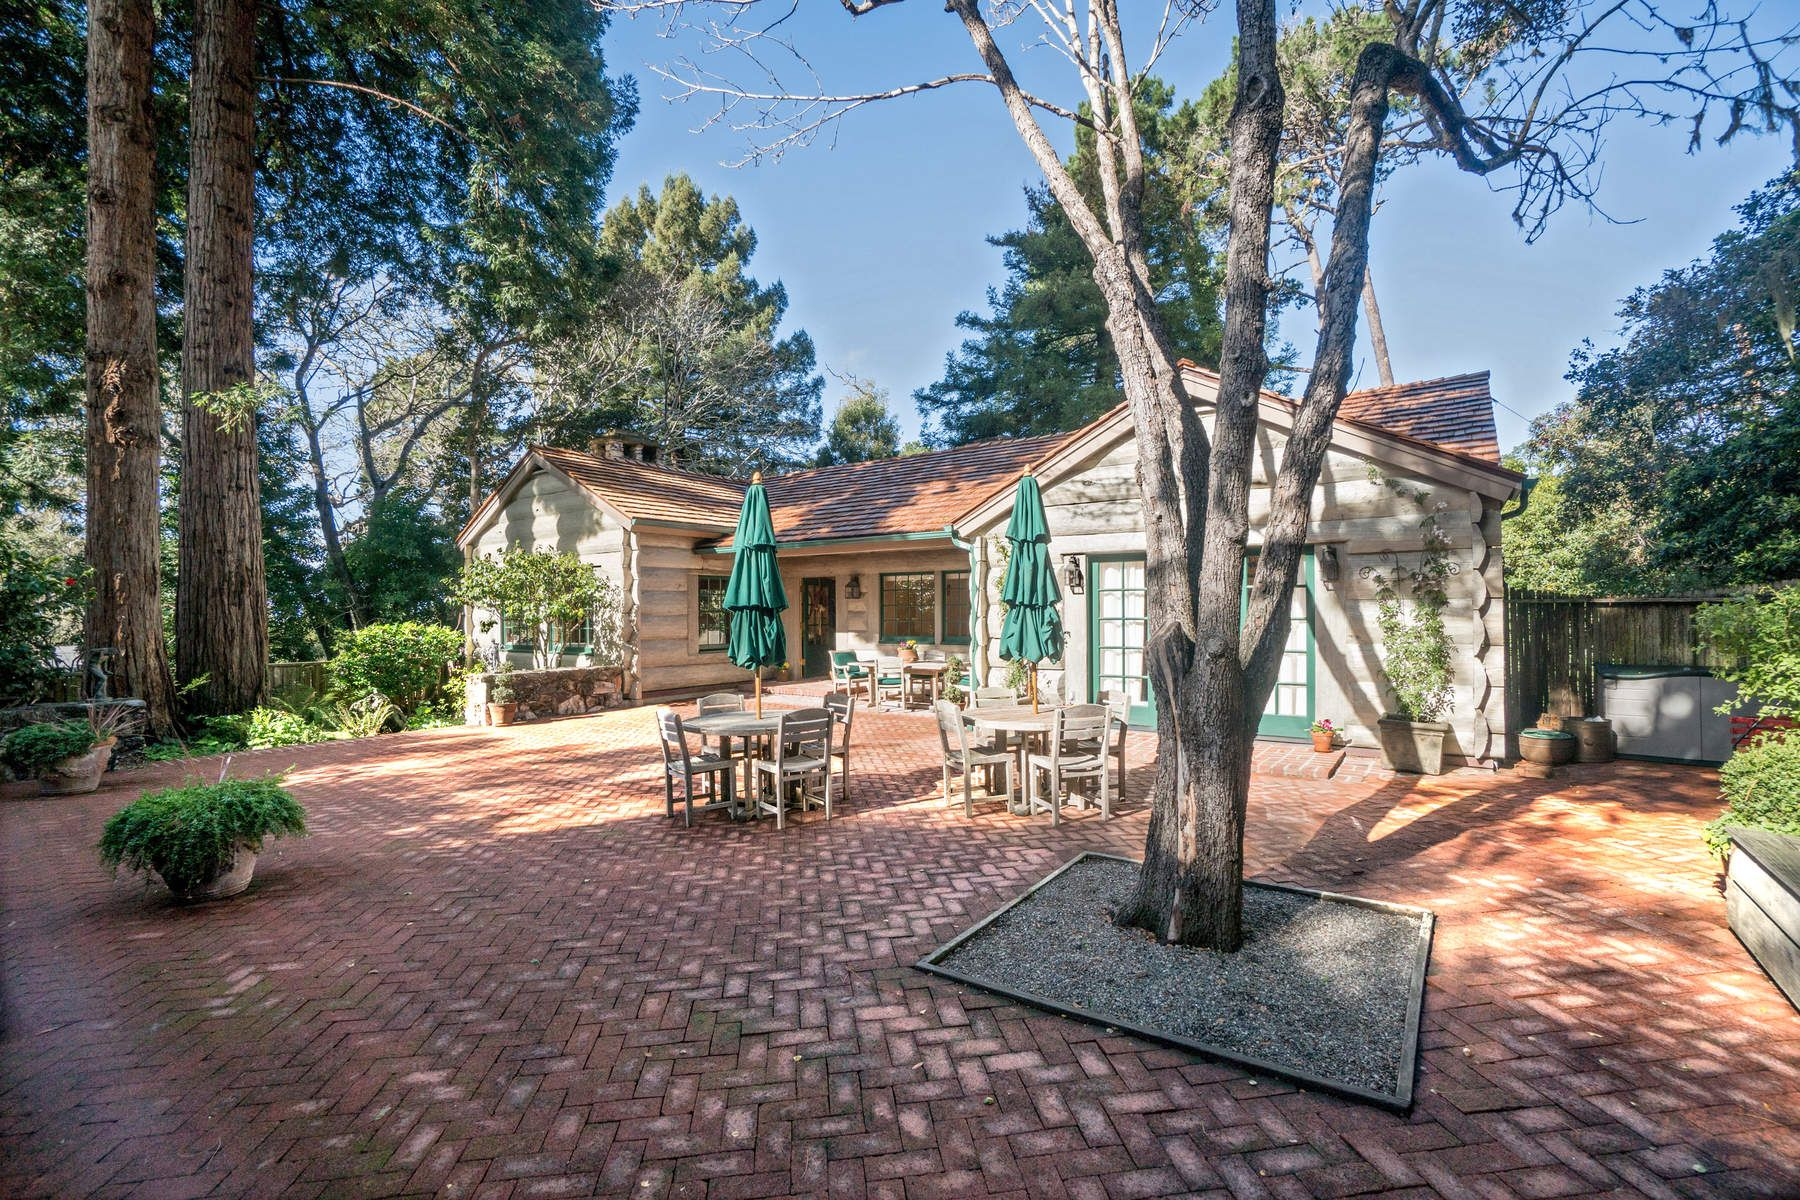 واحد منزل الأسرة للـ Sale في Cabinwood in Carmel-by-the-Sea 0 Palou 11 Nw Casanova Carmel By The Sea, California 93921 United States